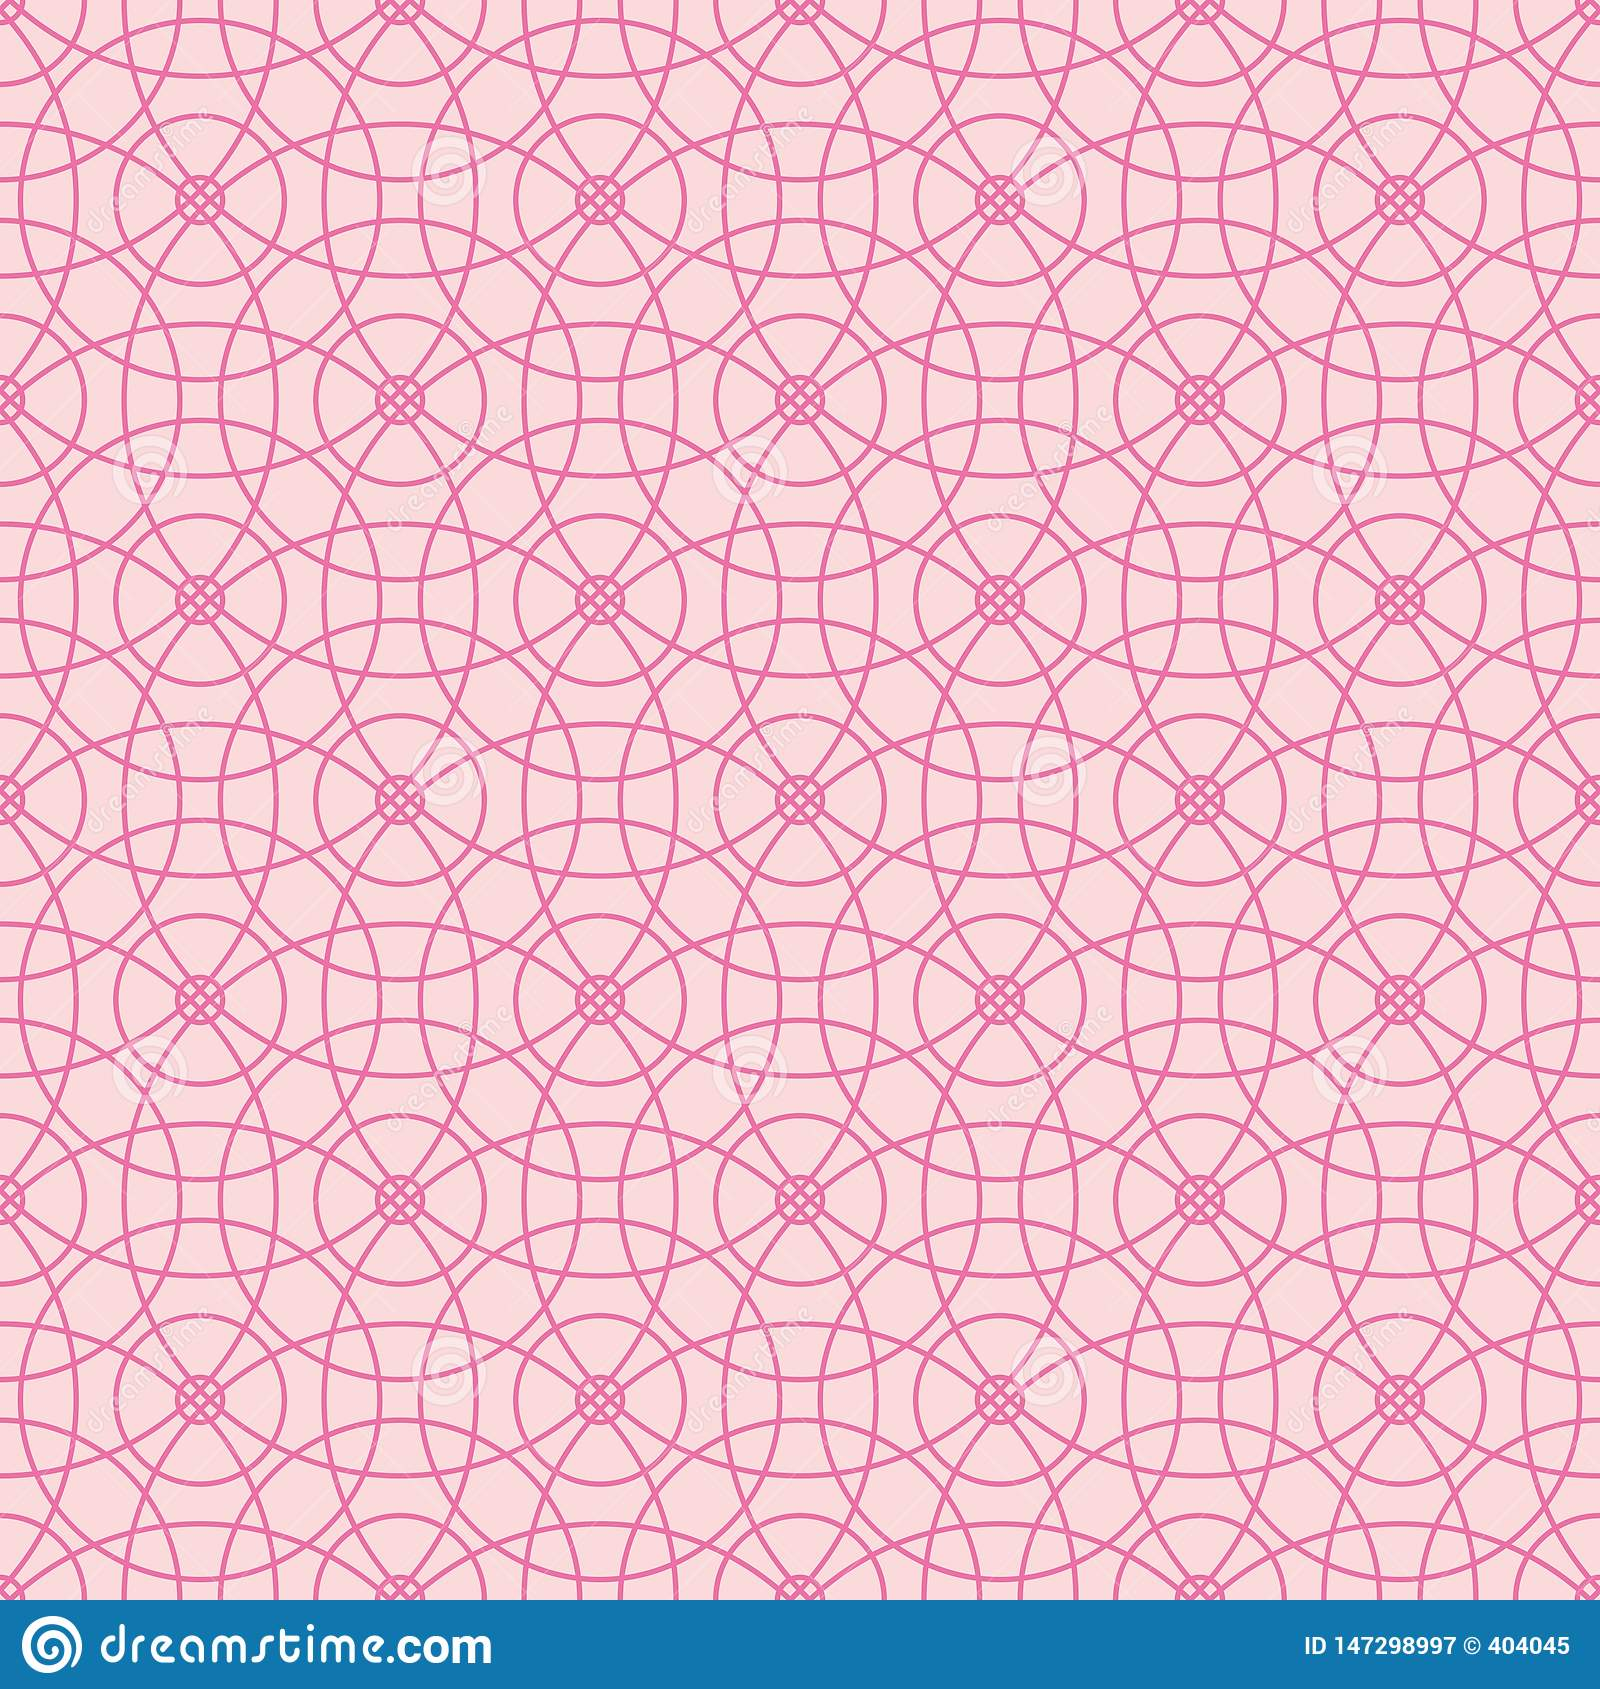 Seamless pattern of abstract pink circles on a light pink background for fabric, wallpaper, tablecloths, prints and designs.